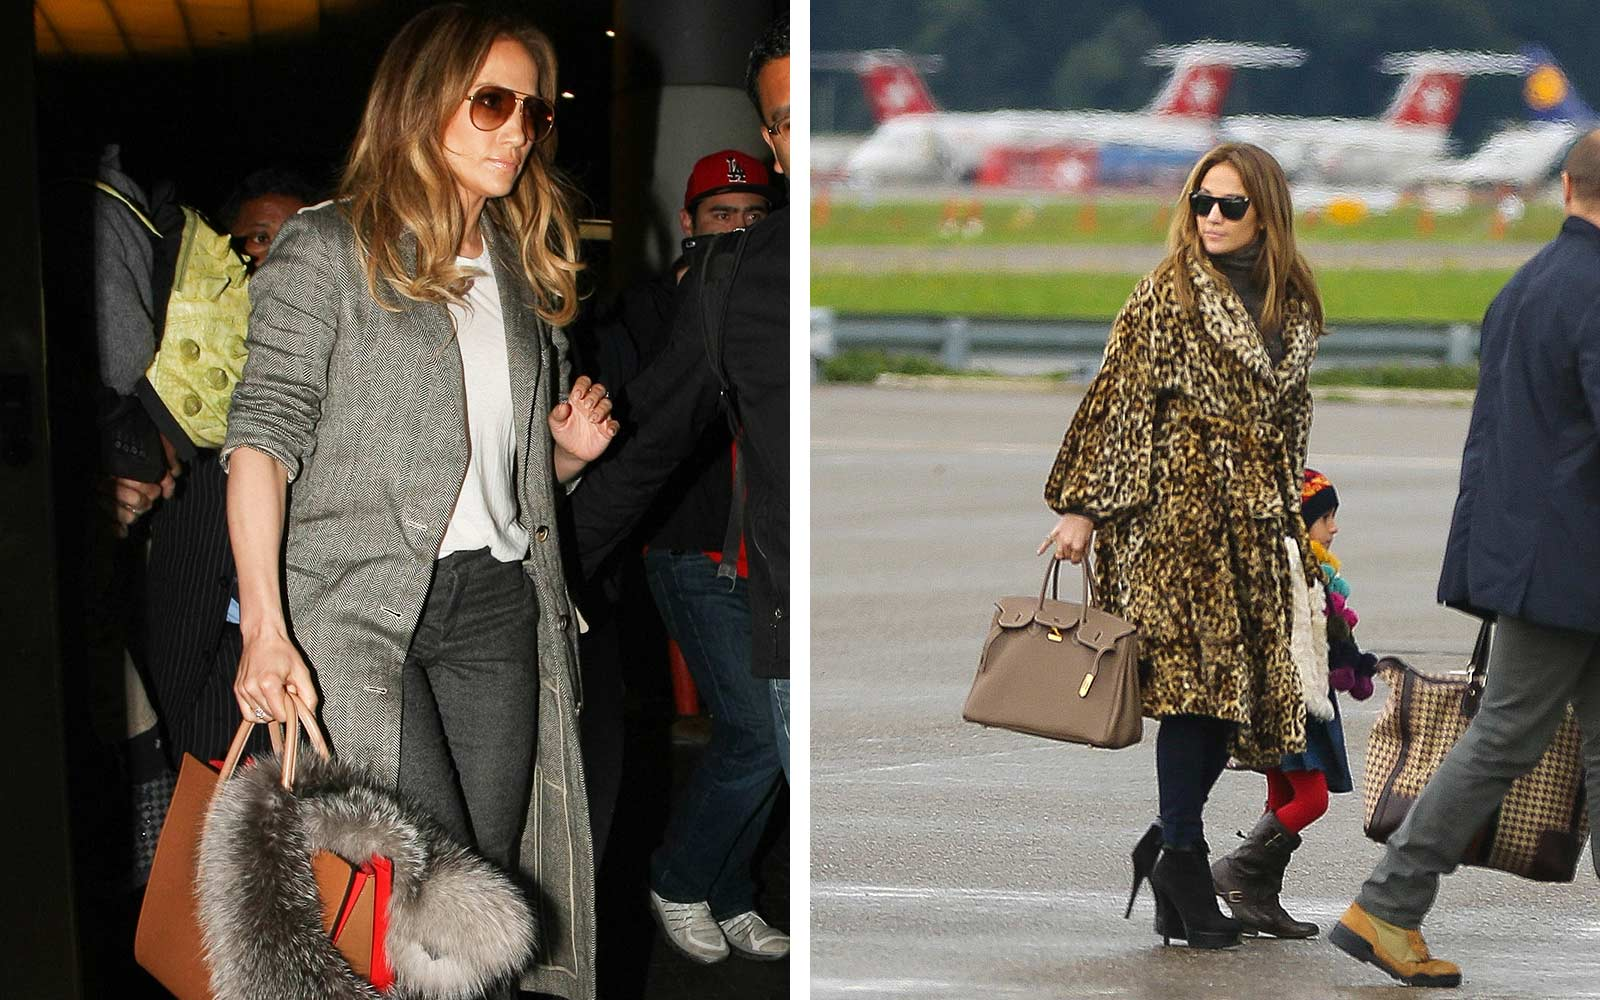 How To Step Off A Plane Looking As Fresh As Jennifer Lopez, According To Her Makeup Artist